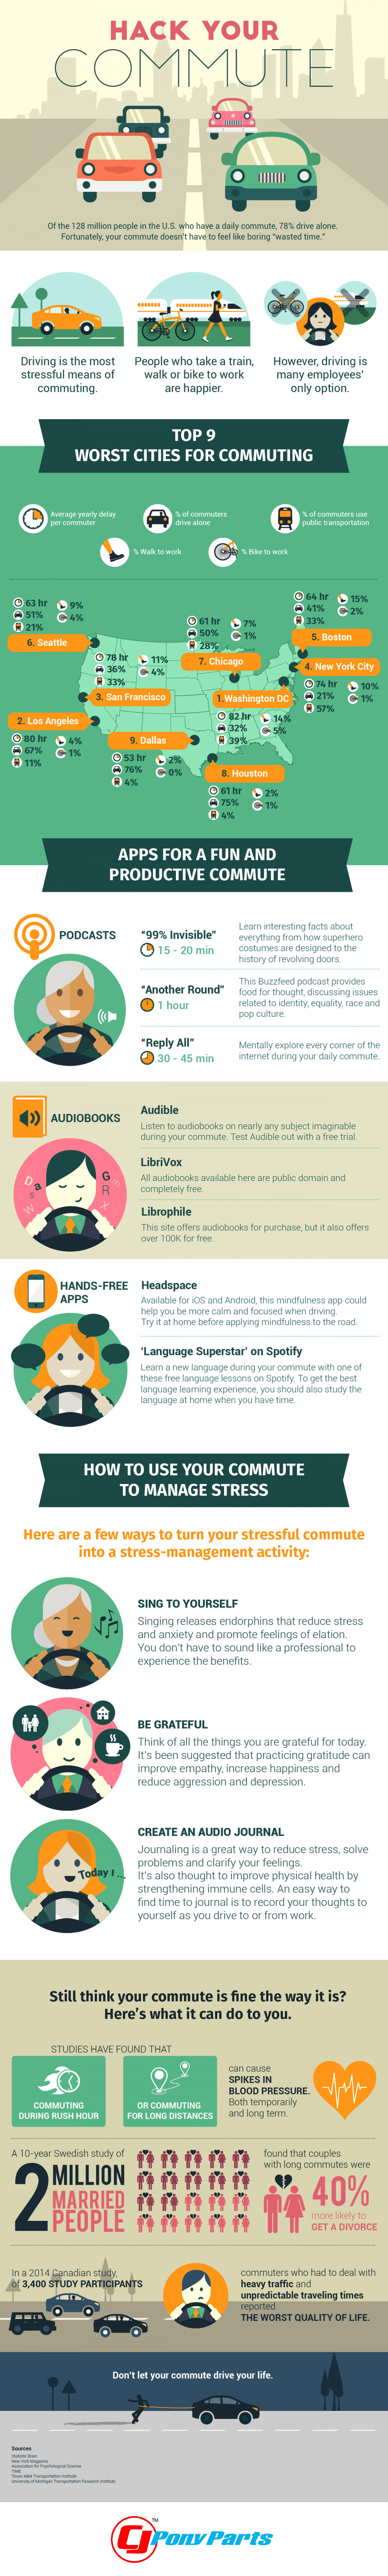 Hack Your Commute Infographic